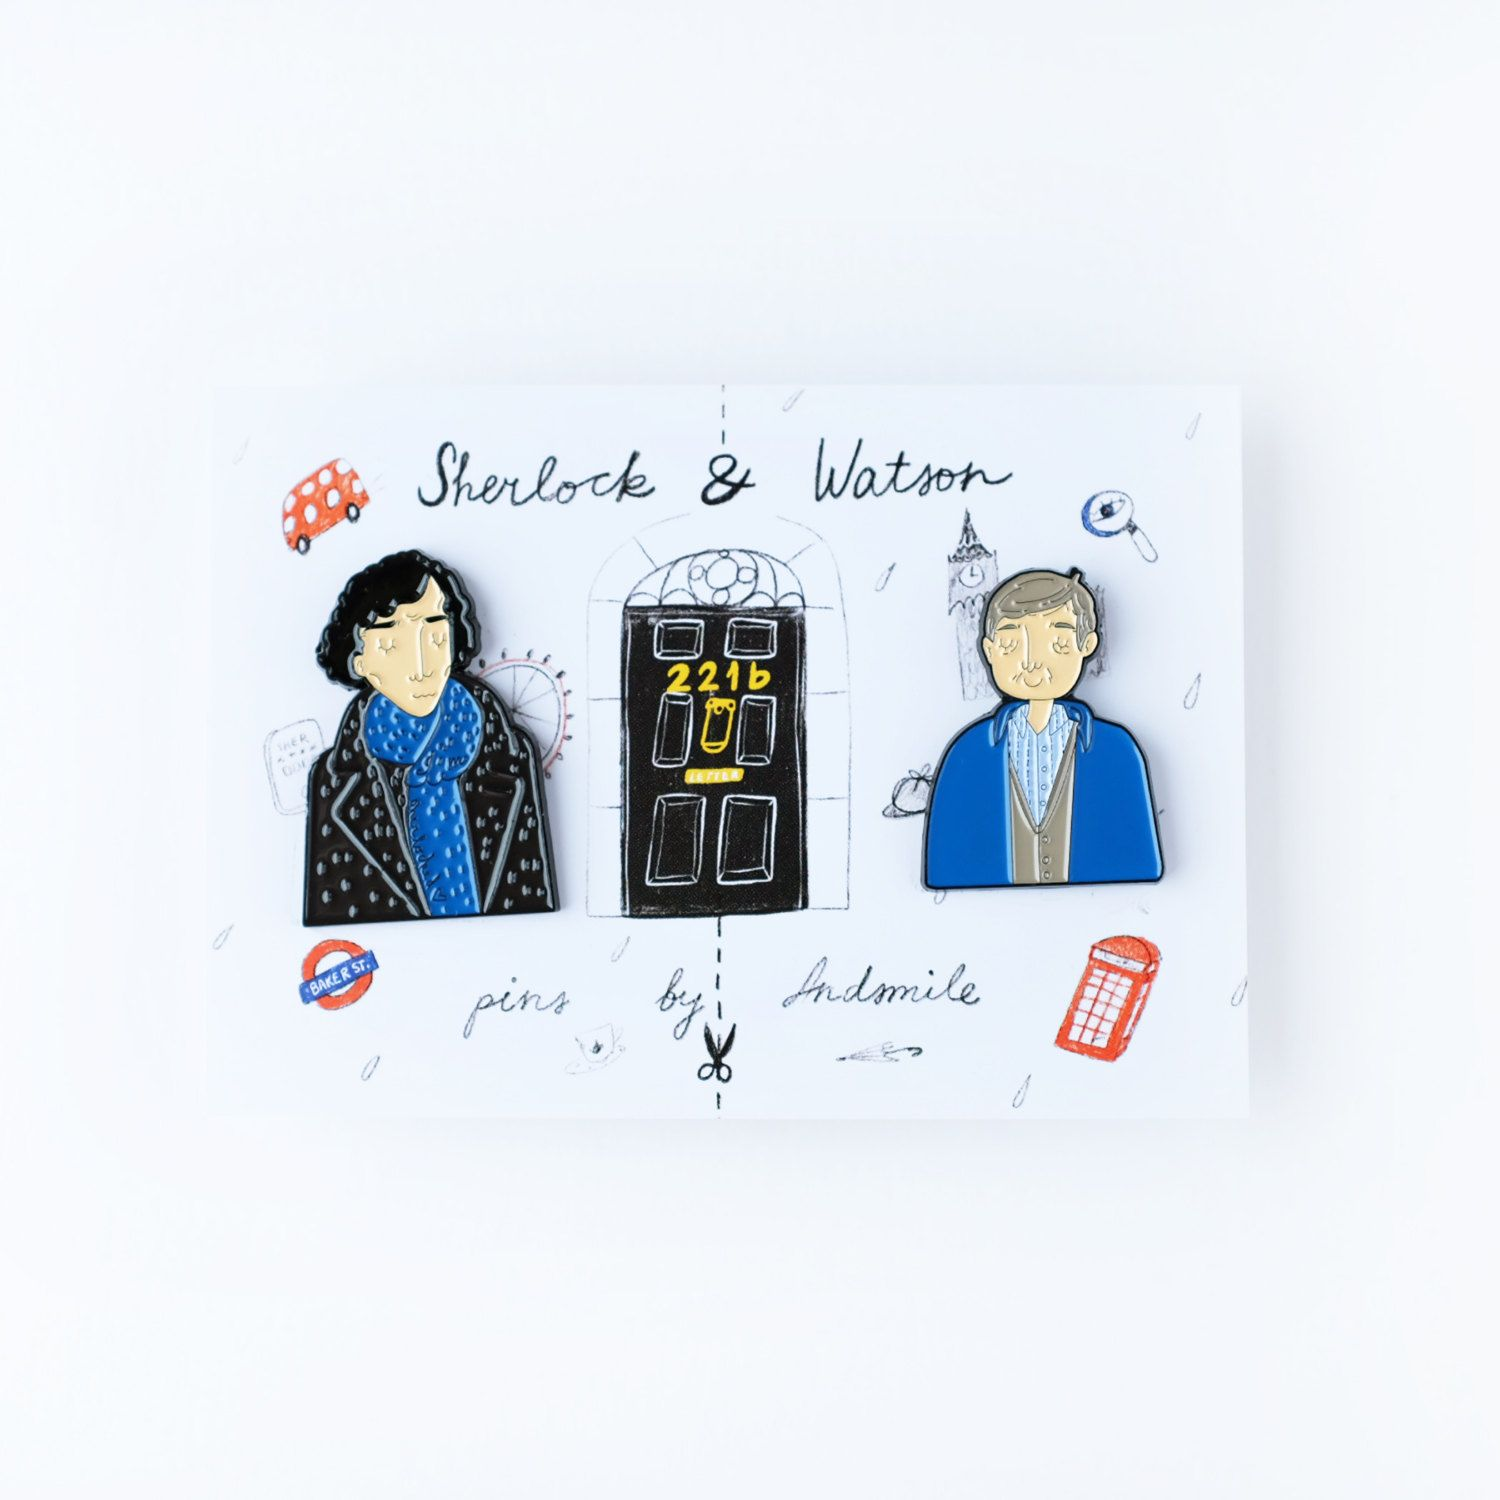 Sherlock & Watson are made from high quality black metal and based on my original fan drawings, have a lapel pin back / butterfly metal clasp. Sherlock is 3.7cm tall and 2.6cm wide, Watson is 3cm tall and 2.4cm wide.  They come on a cute A7 size backing card featuring London landmarks & Sherlock themed objects.  Keep both for yourself or cut the packaging in two and share Watson or Sherlock with a fan friend! Designed & made with love, will be shipped with care.